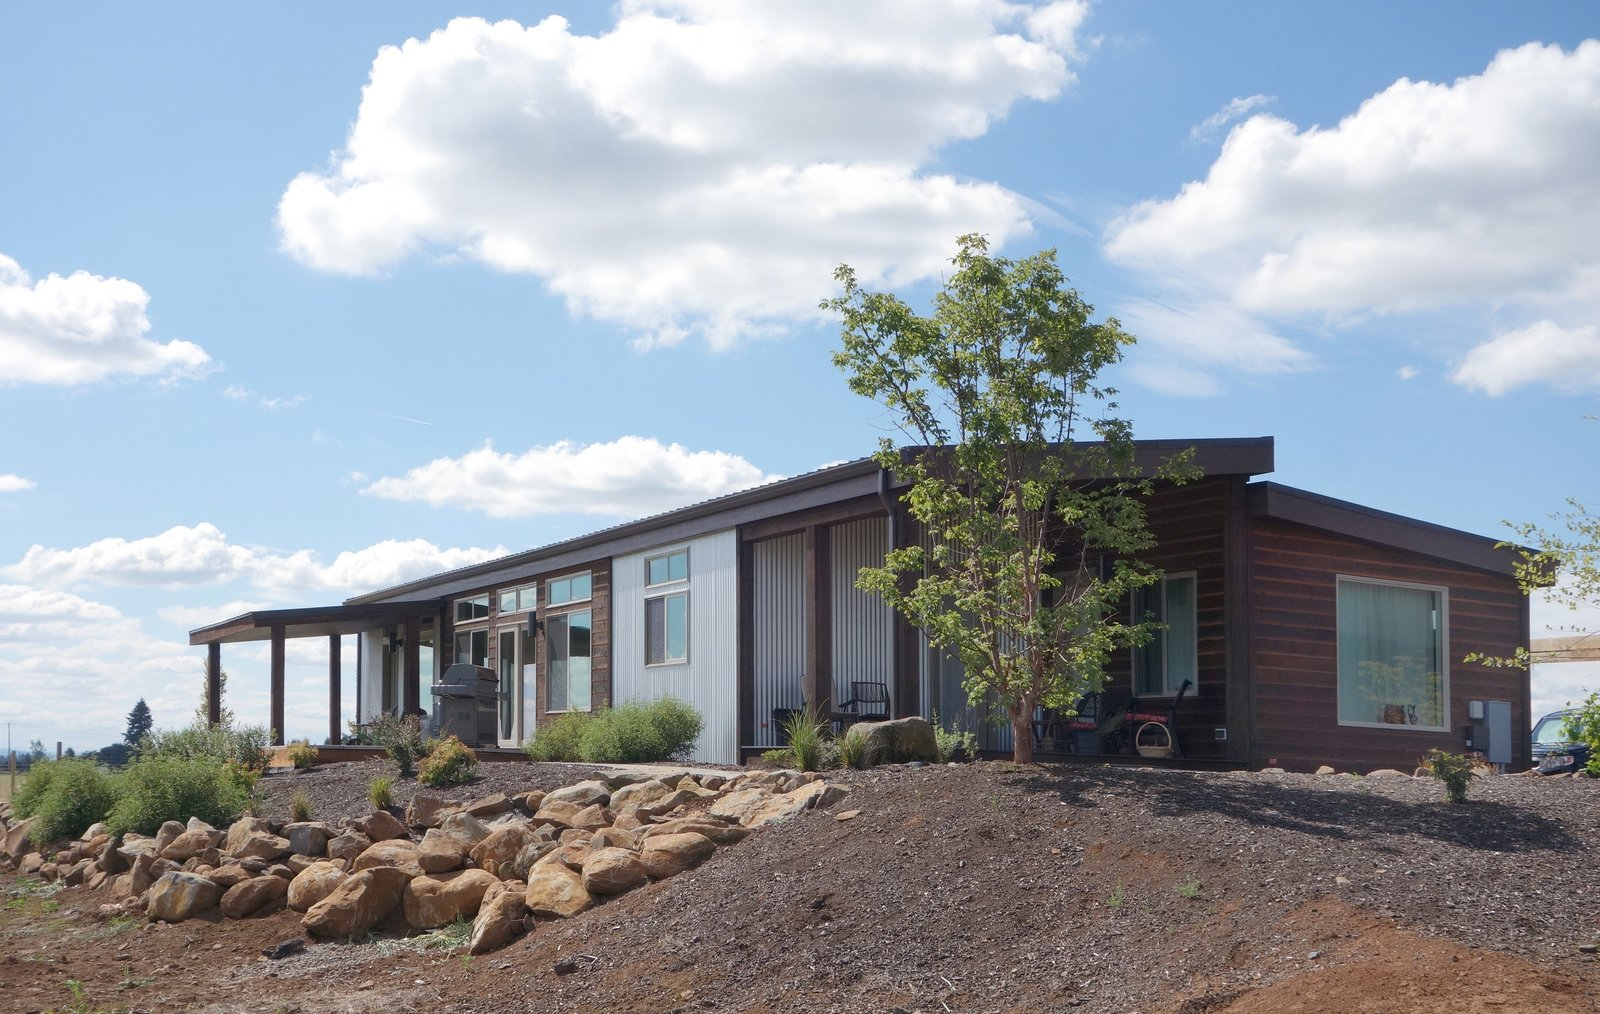 Exterior, Metal Siding Material, Metal Roof Material, Wood Siding Material, Prefab Building Type, and House Building Type Salem, Oregon-based Ideabox approaches prefabricated homes from a modern and sustainable point of view, seeking to build prefab residences that are beautiful, efficient, and affordable. With 9 basic types that can be customized, the homes start at 400-500 square feet and reach about 1,600 square feet. Each home is built with open-web engineered trusses, insulation with high R-values, dual pane low-e windows, and EnergyStar-certified appliances.  Photo 5 of 7 in 7 Prefab Companies That Oregon Dwellers Should Know